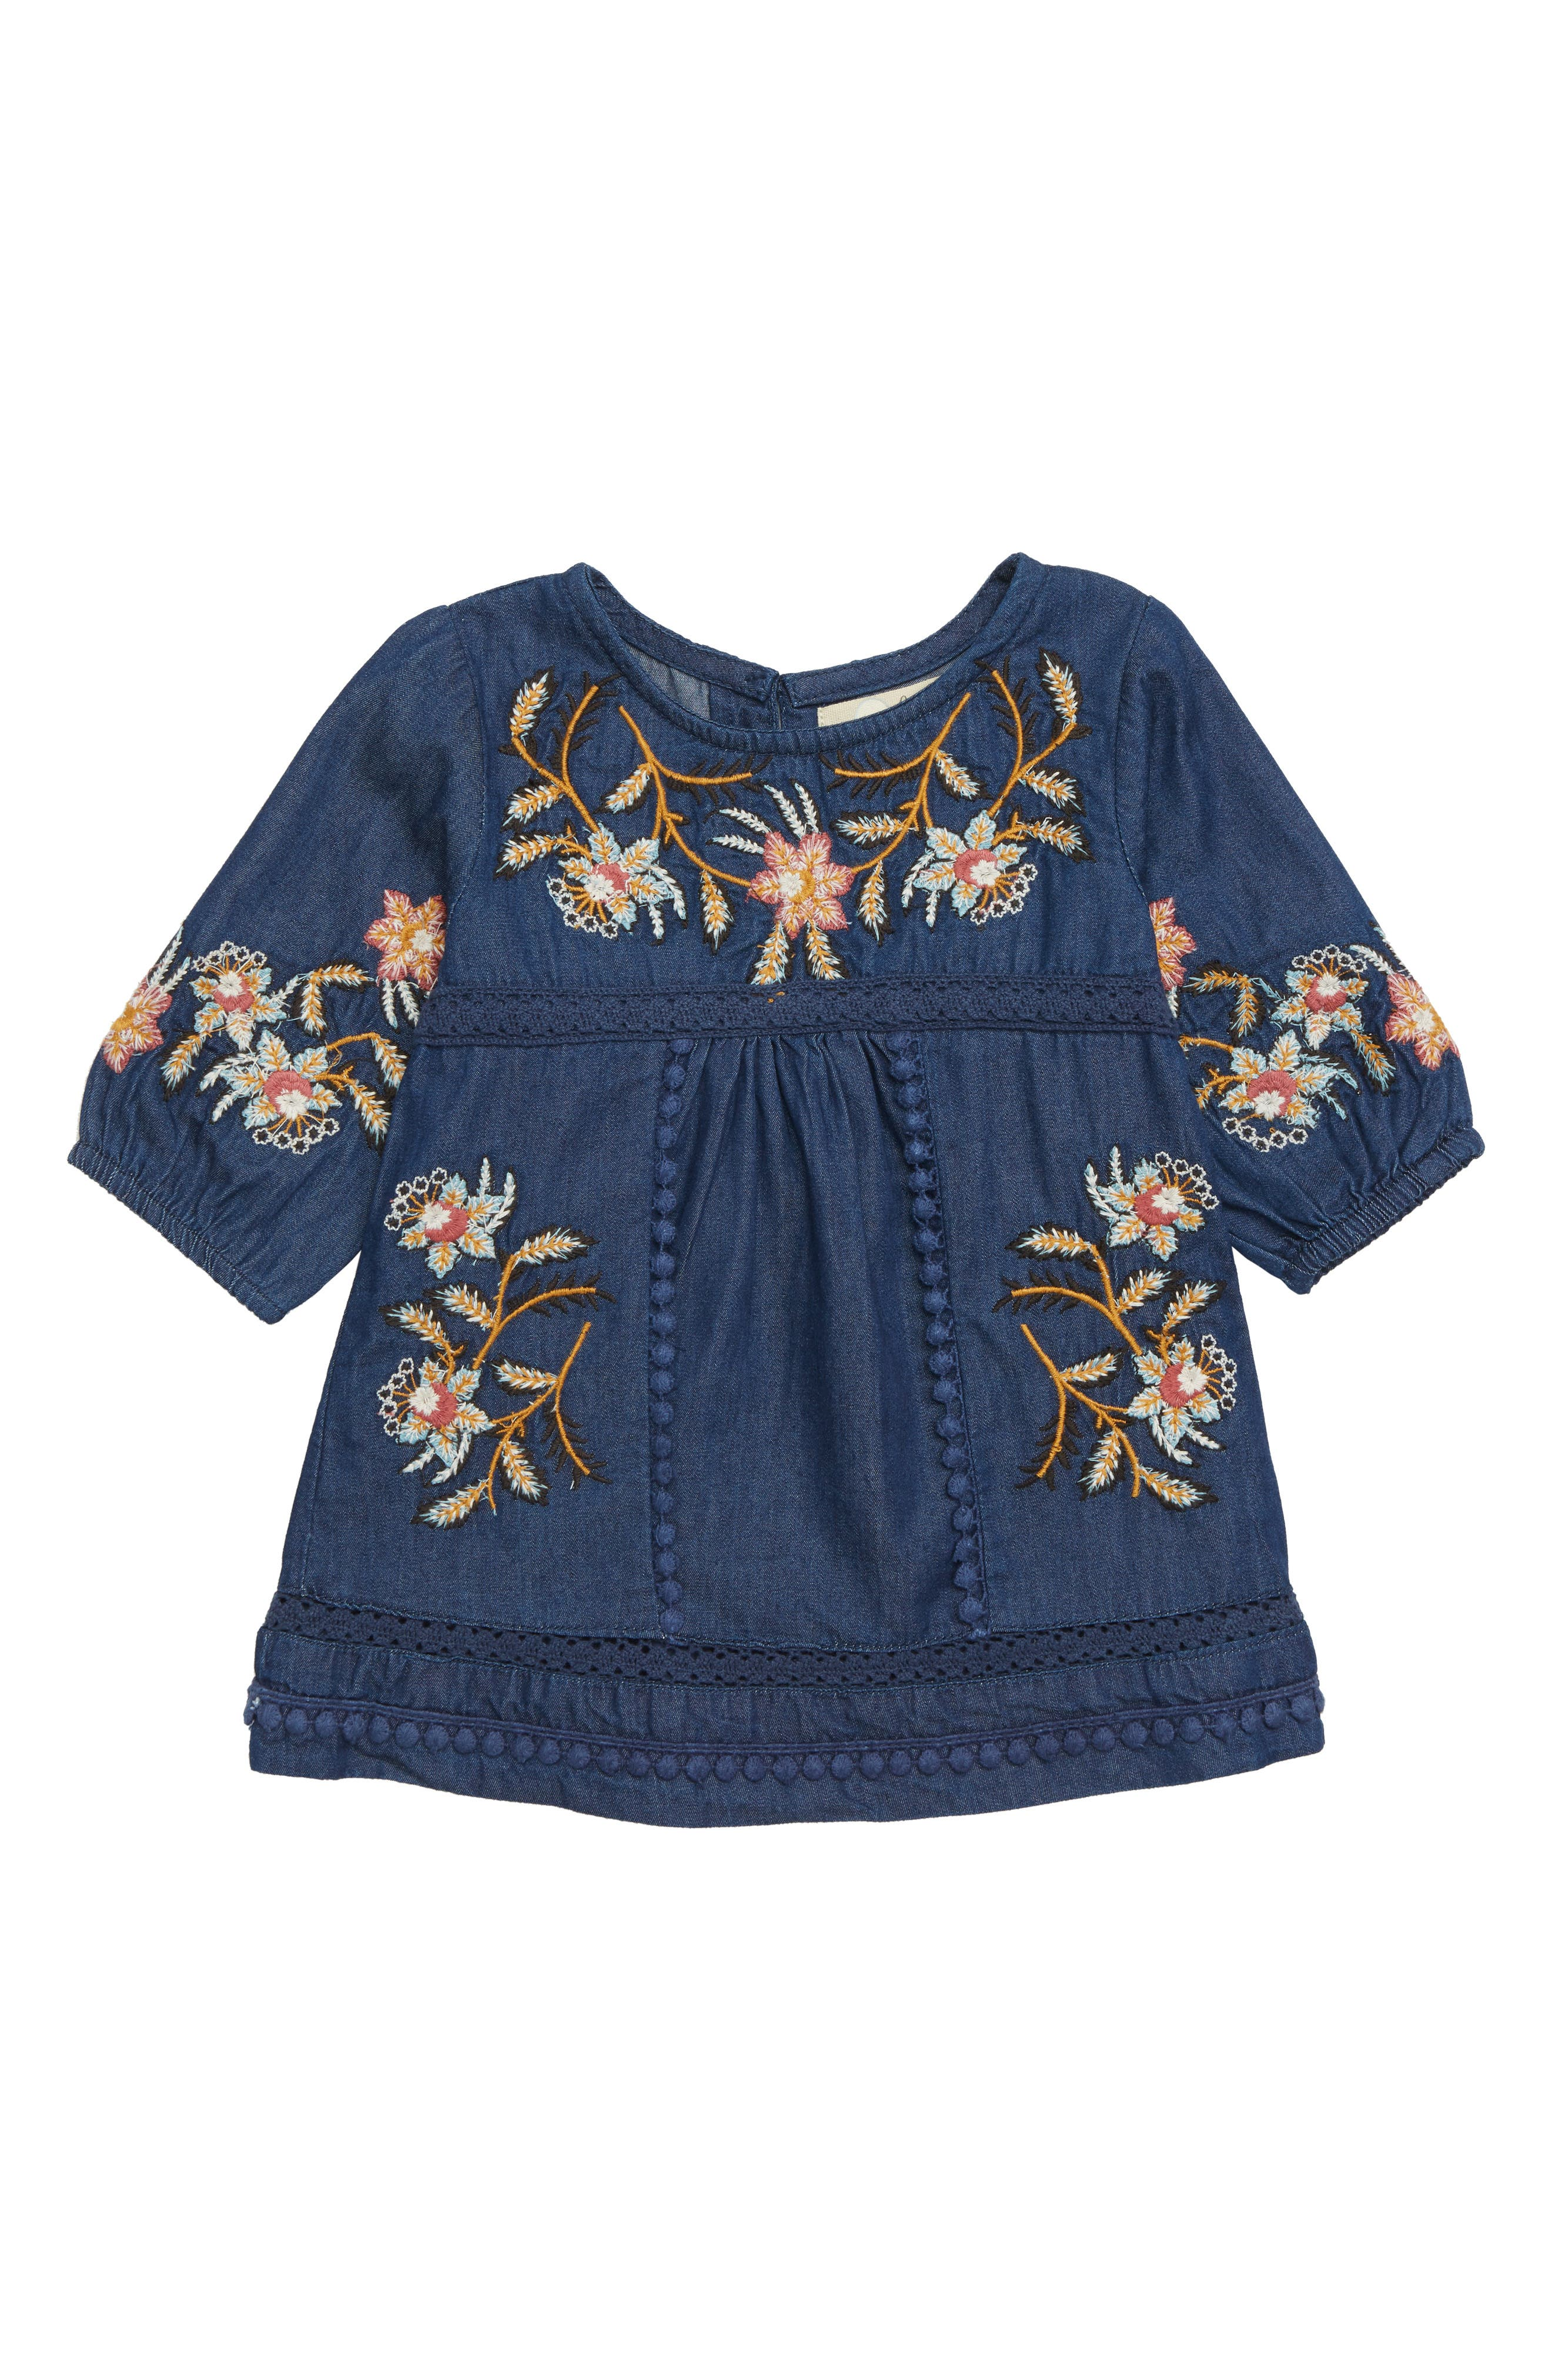 Peek Willow Embroidered Denim Dress,                         Main,                         color, 410